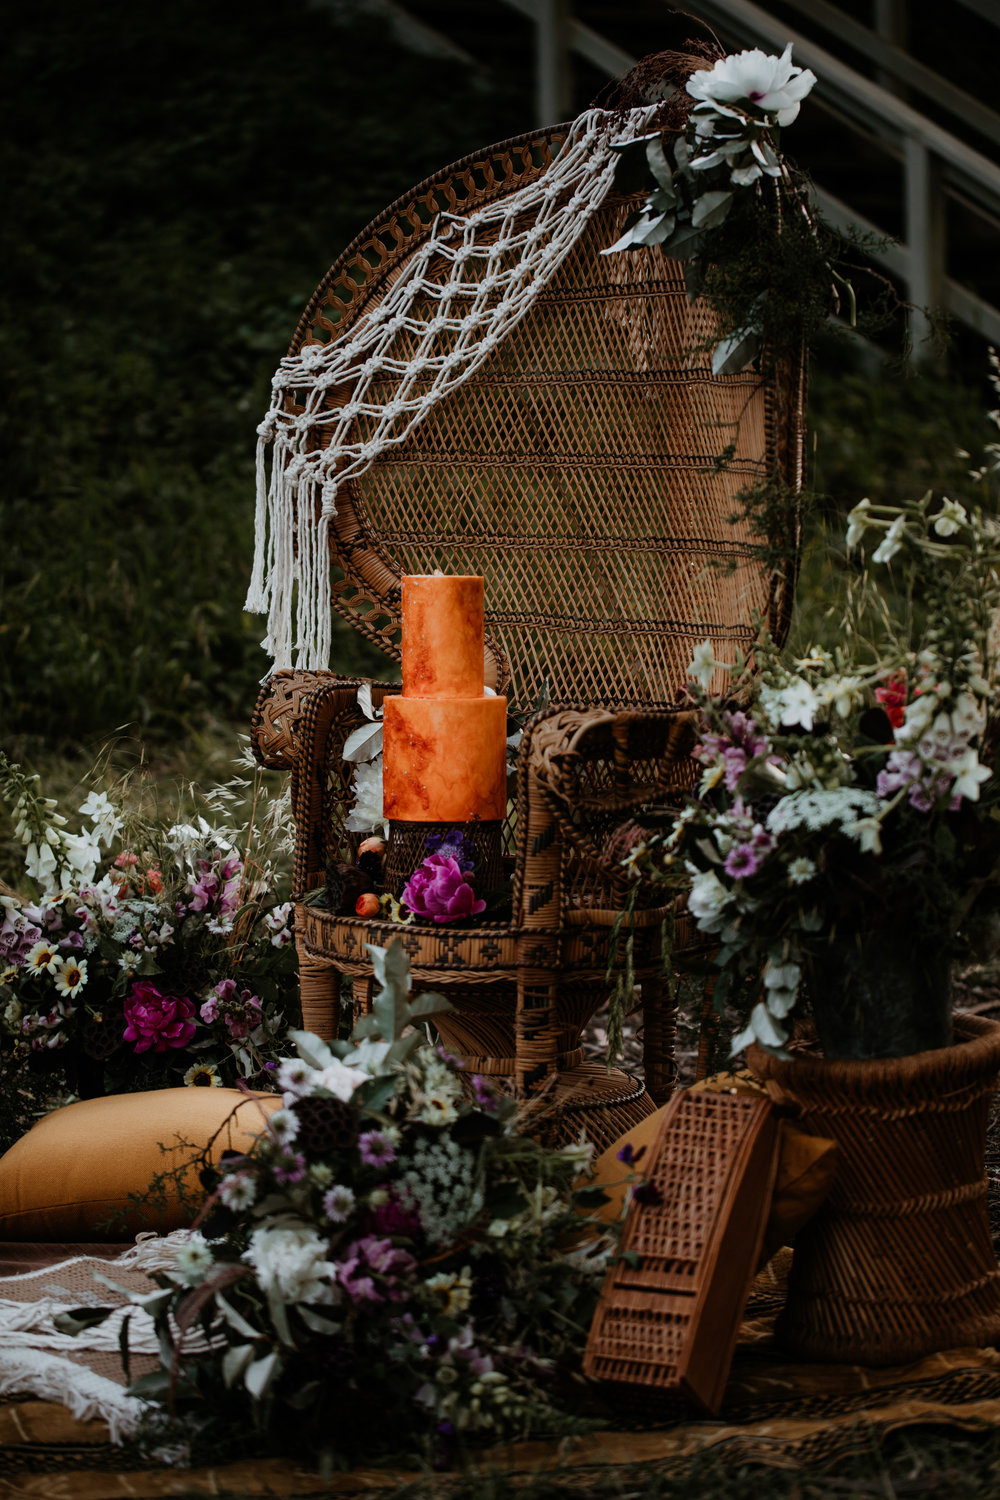 Summer-Solstice-Styled-Elopement-Shoot-Will-Khoury-Photography-Wilder-Events-Rose-Quartz-Cakery-2352.jpg